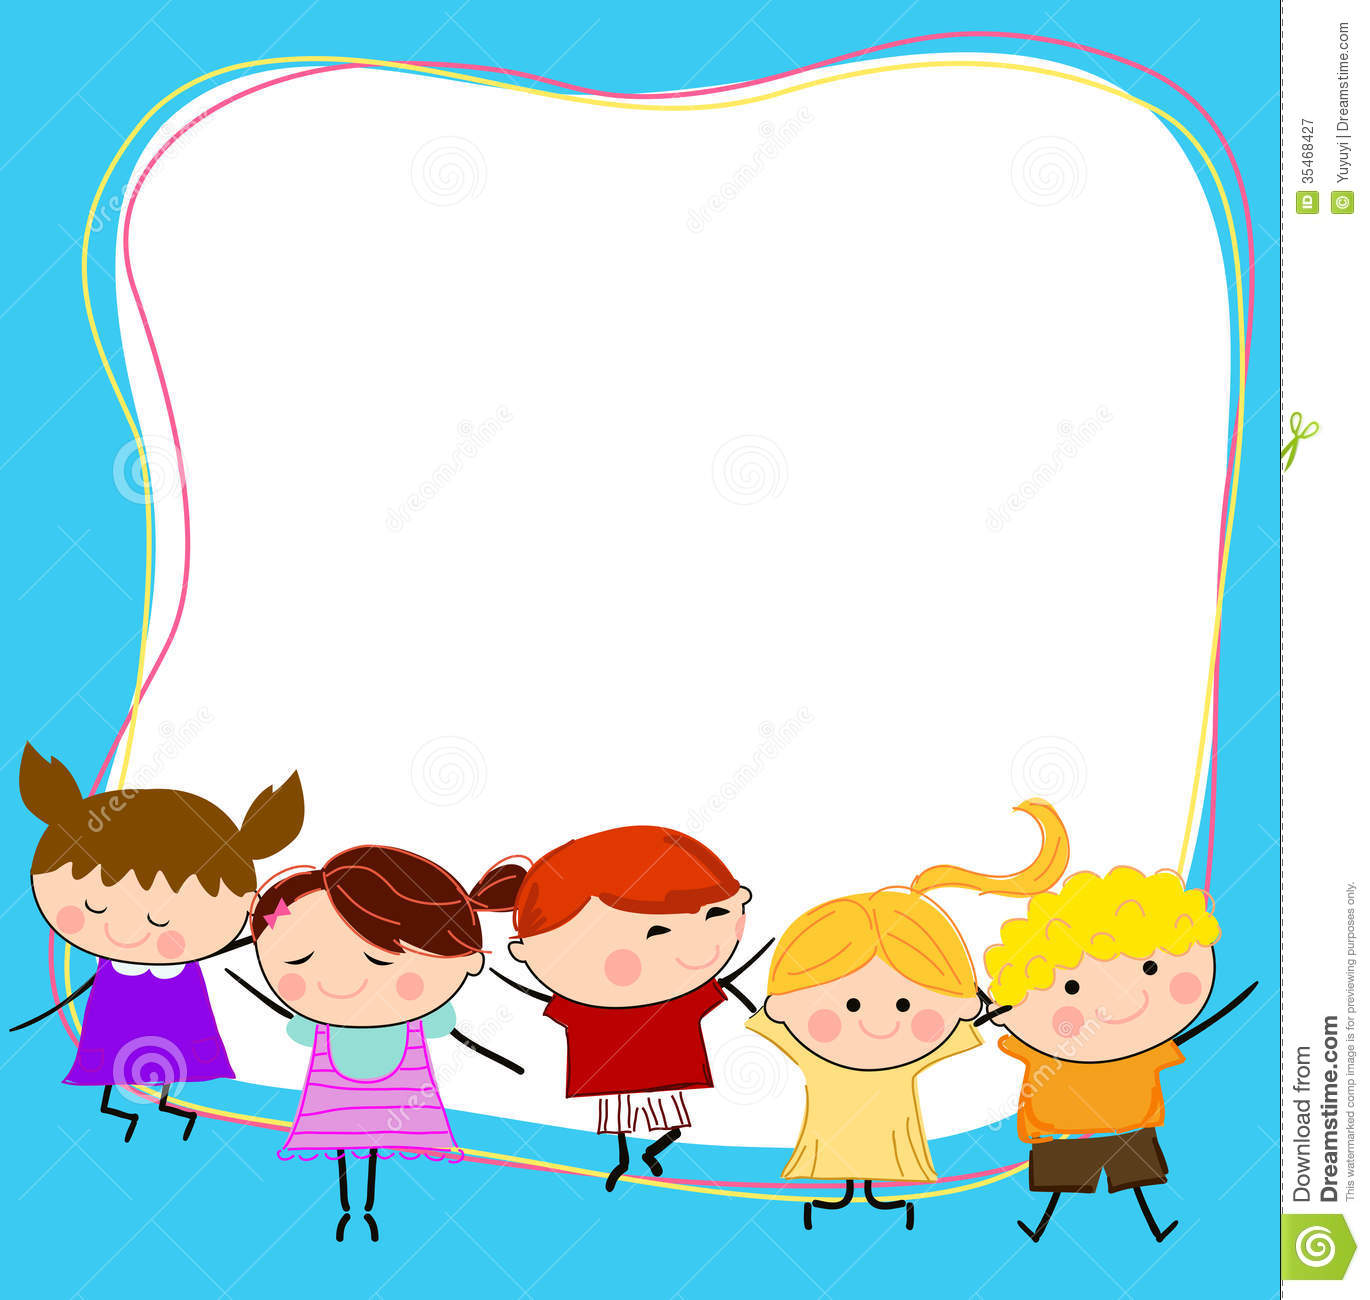 Group Of Kids Having Fun And Frame Stock Vector - Illustration of ...